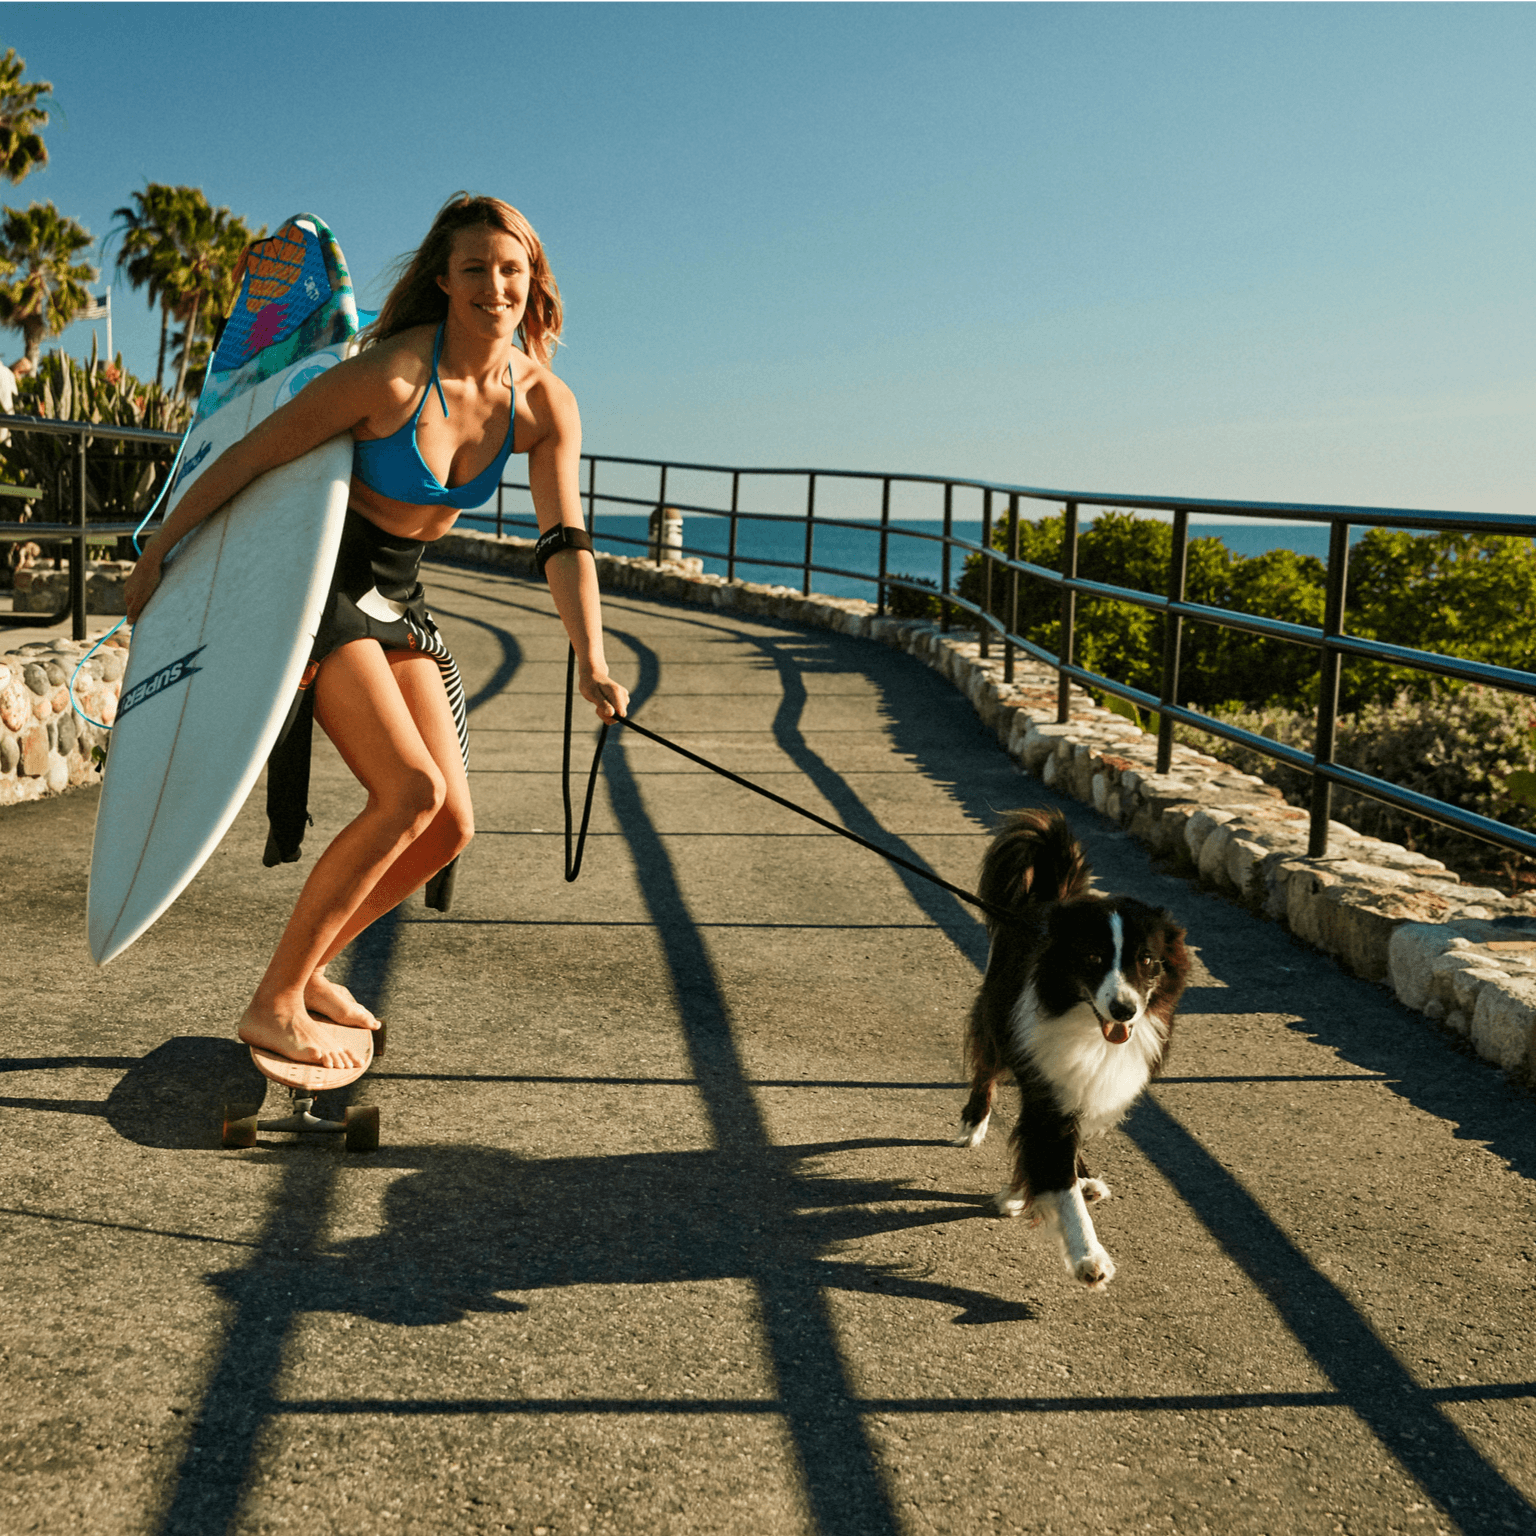 Surfer girl on a skateboard wearing Bingin Dog 'Back in Black' velcro dog leash handle around her arm while Border Collie runs beside her.